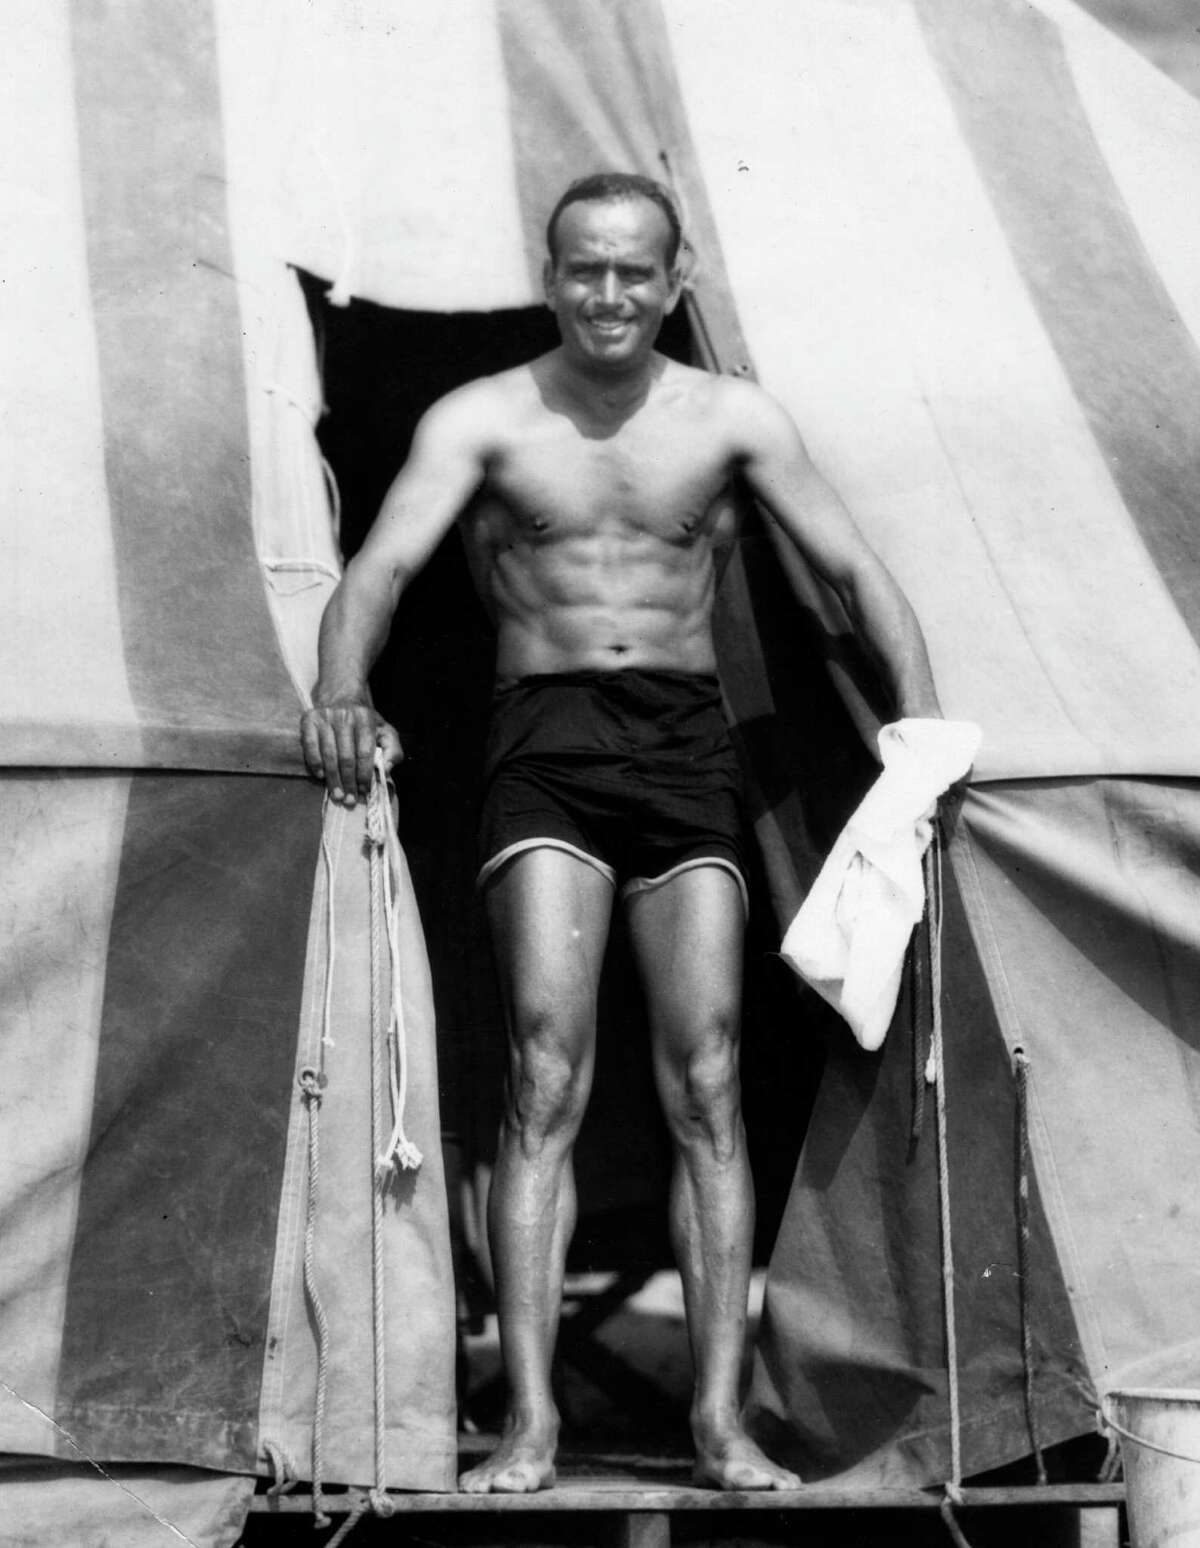 1929: Douglas Fairbanks, pictured above, hosted the event with William C. deMille.